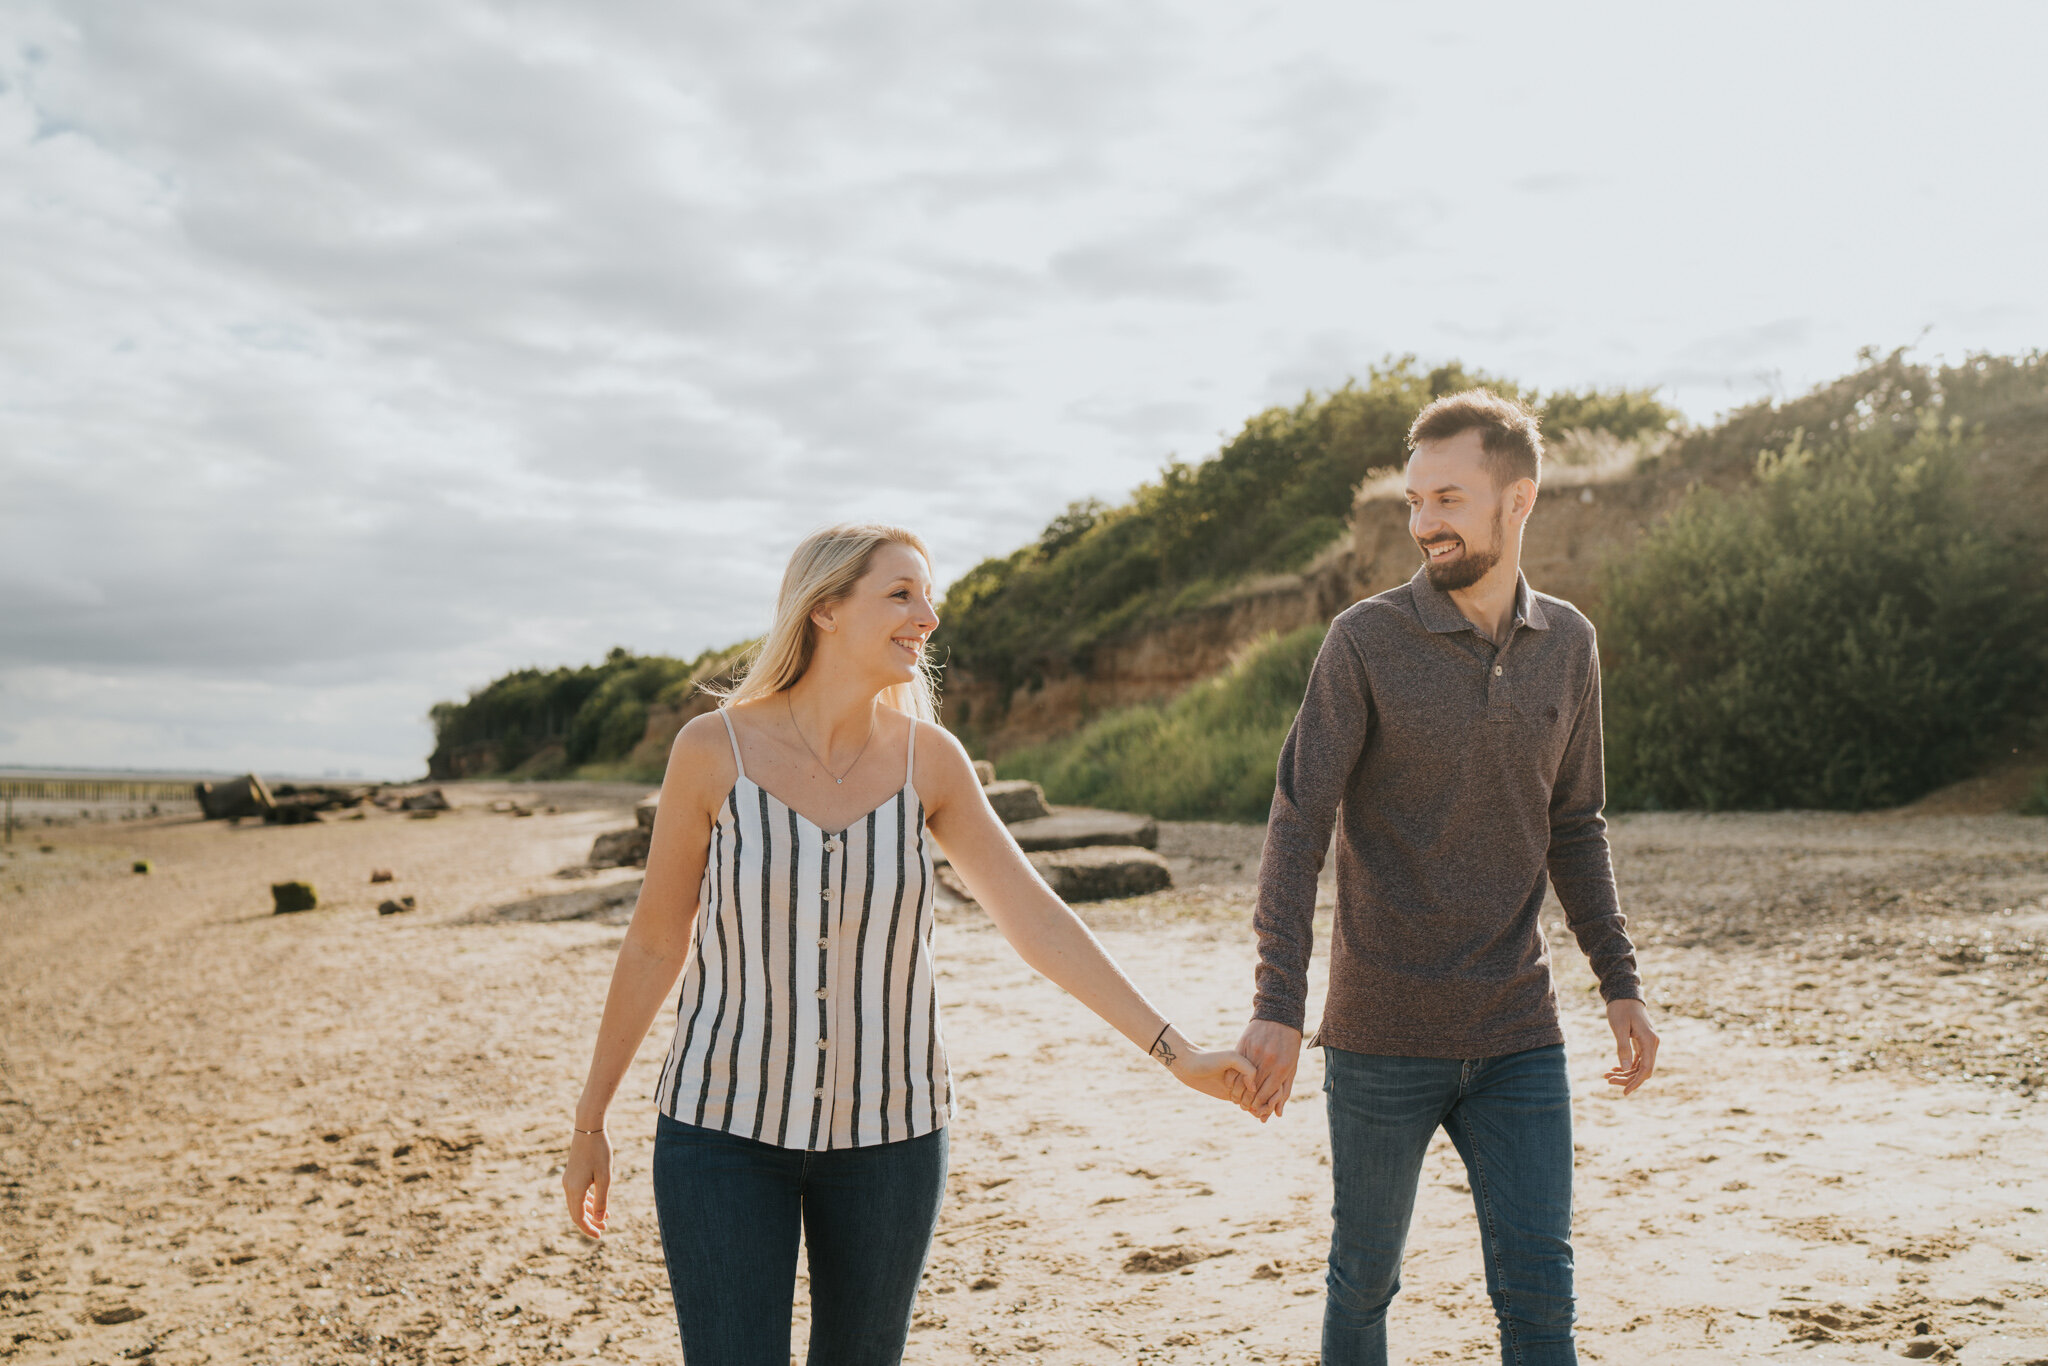 celebratory-beach-family-session-thomson-family-cudmore-grove-east-mersea-grace-elizabeth-colchester-essex-devon-suffolk-and-norfolk-alternative-wedding-and-family-photographer (41 of 53).jpg